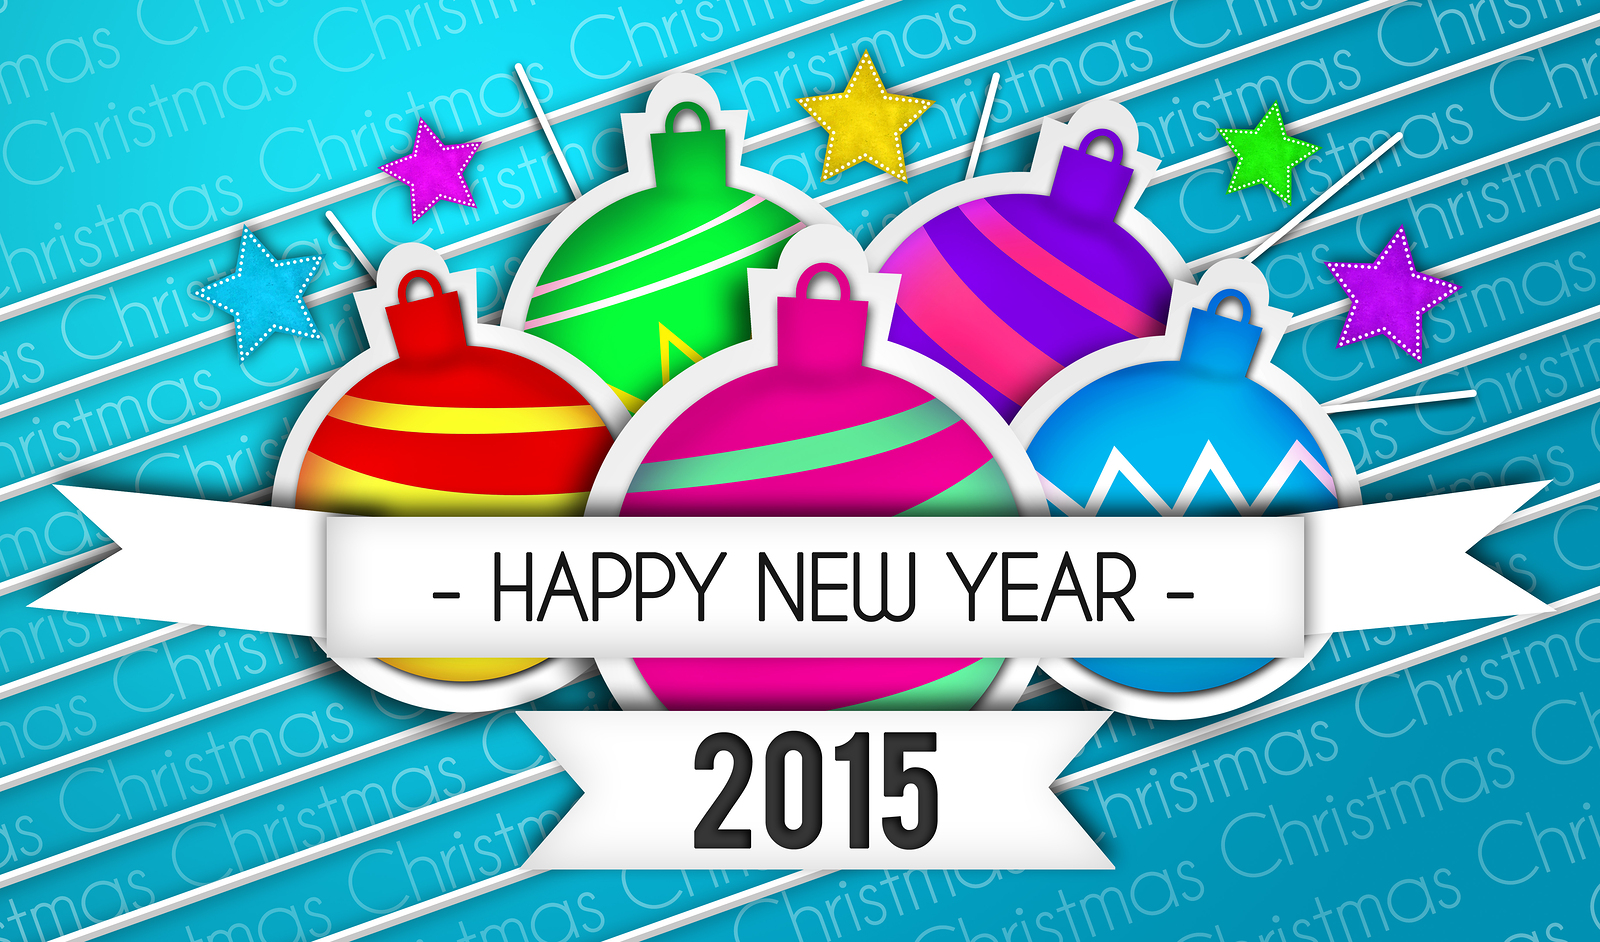 Happy New Year Wallpapers Design 2015